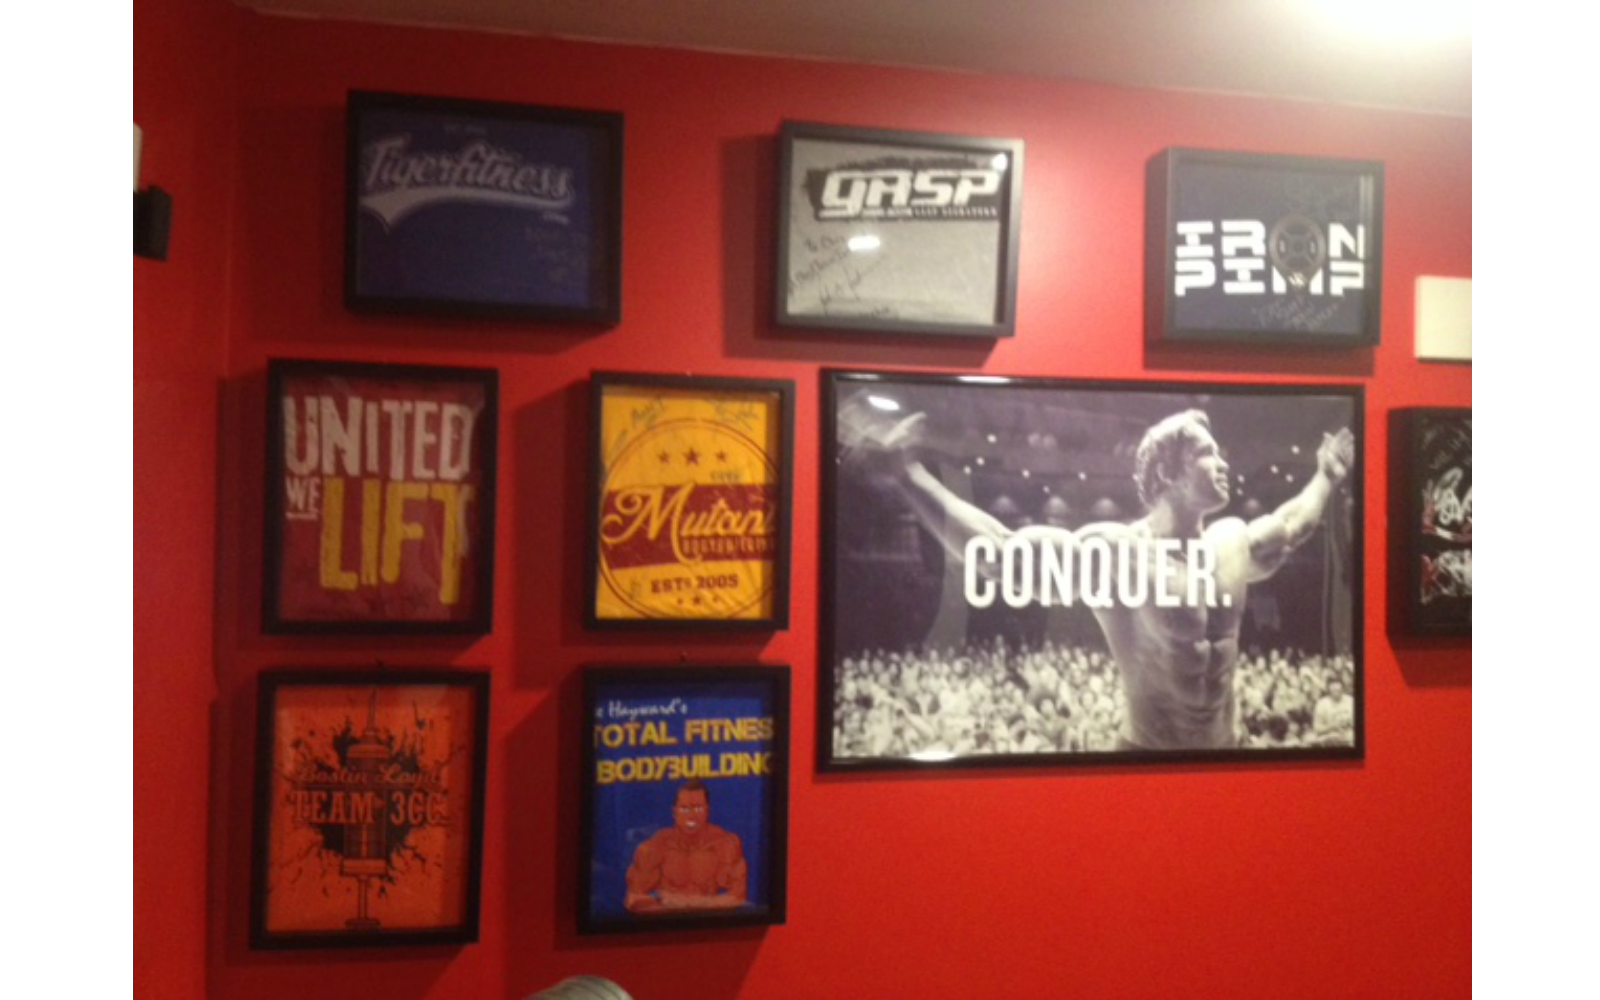 Shart T-Shirt Display Frames are Great Decoration for fitness centers, home gyms and gyms